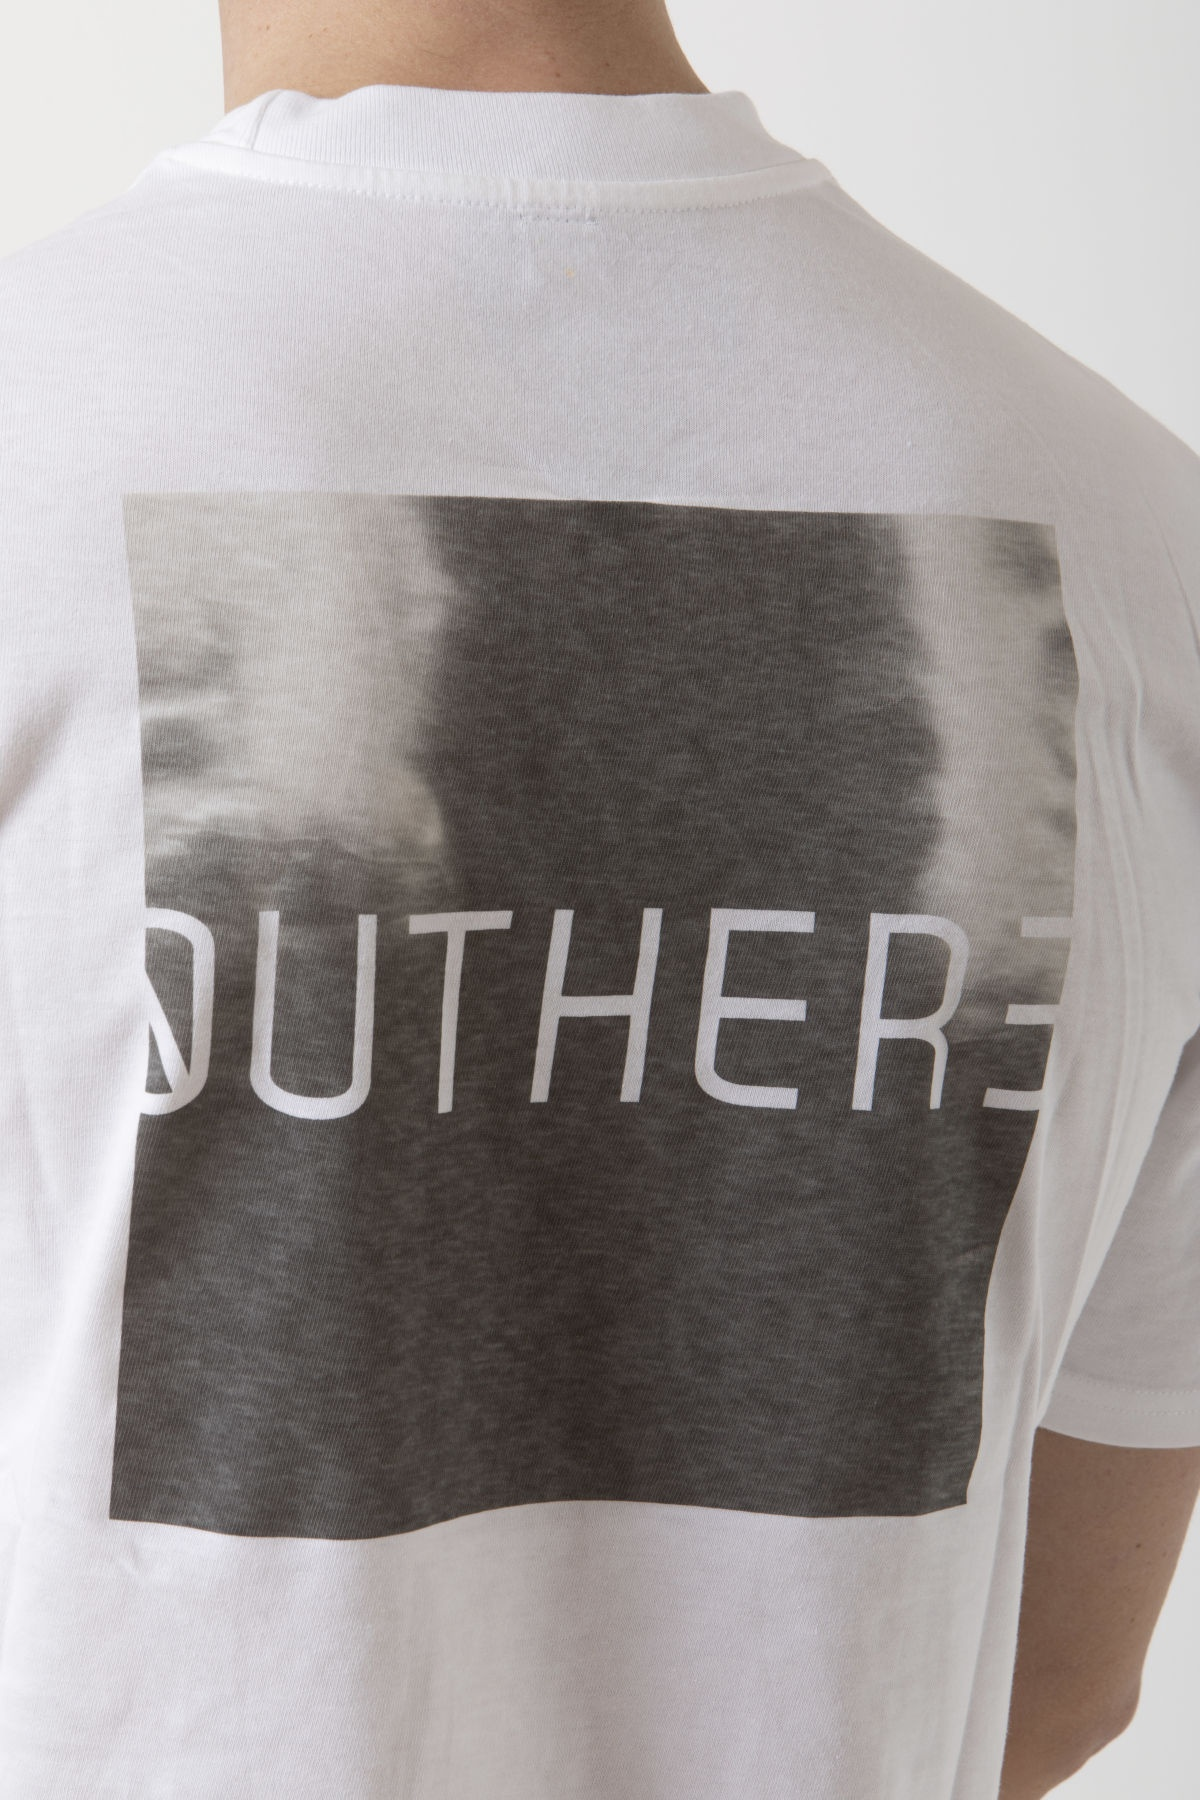 THERMAL REACTIVE JERSEY T-shirt for man OUTHERE S/S 19